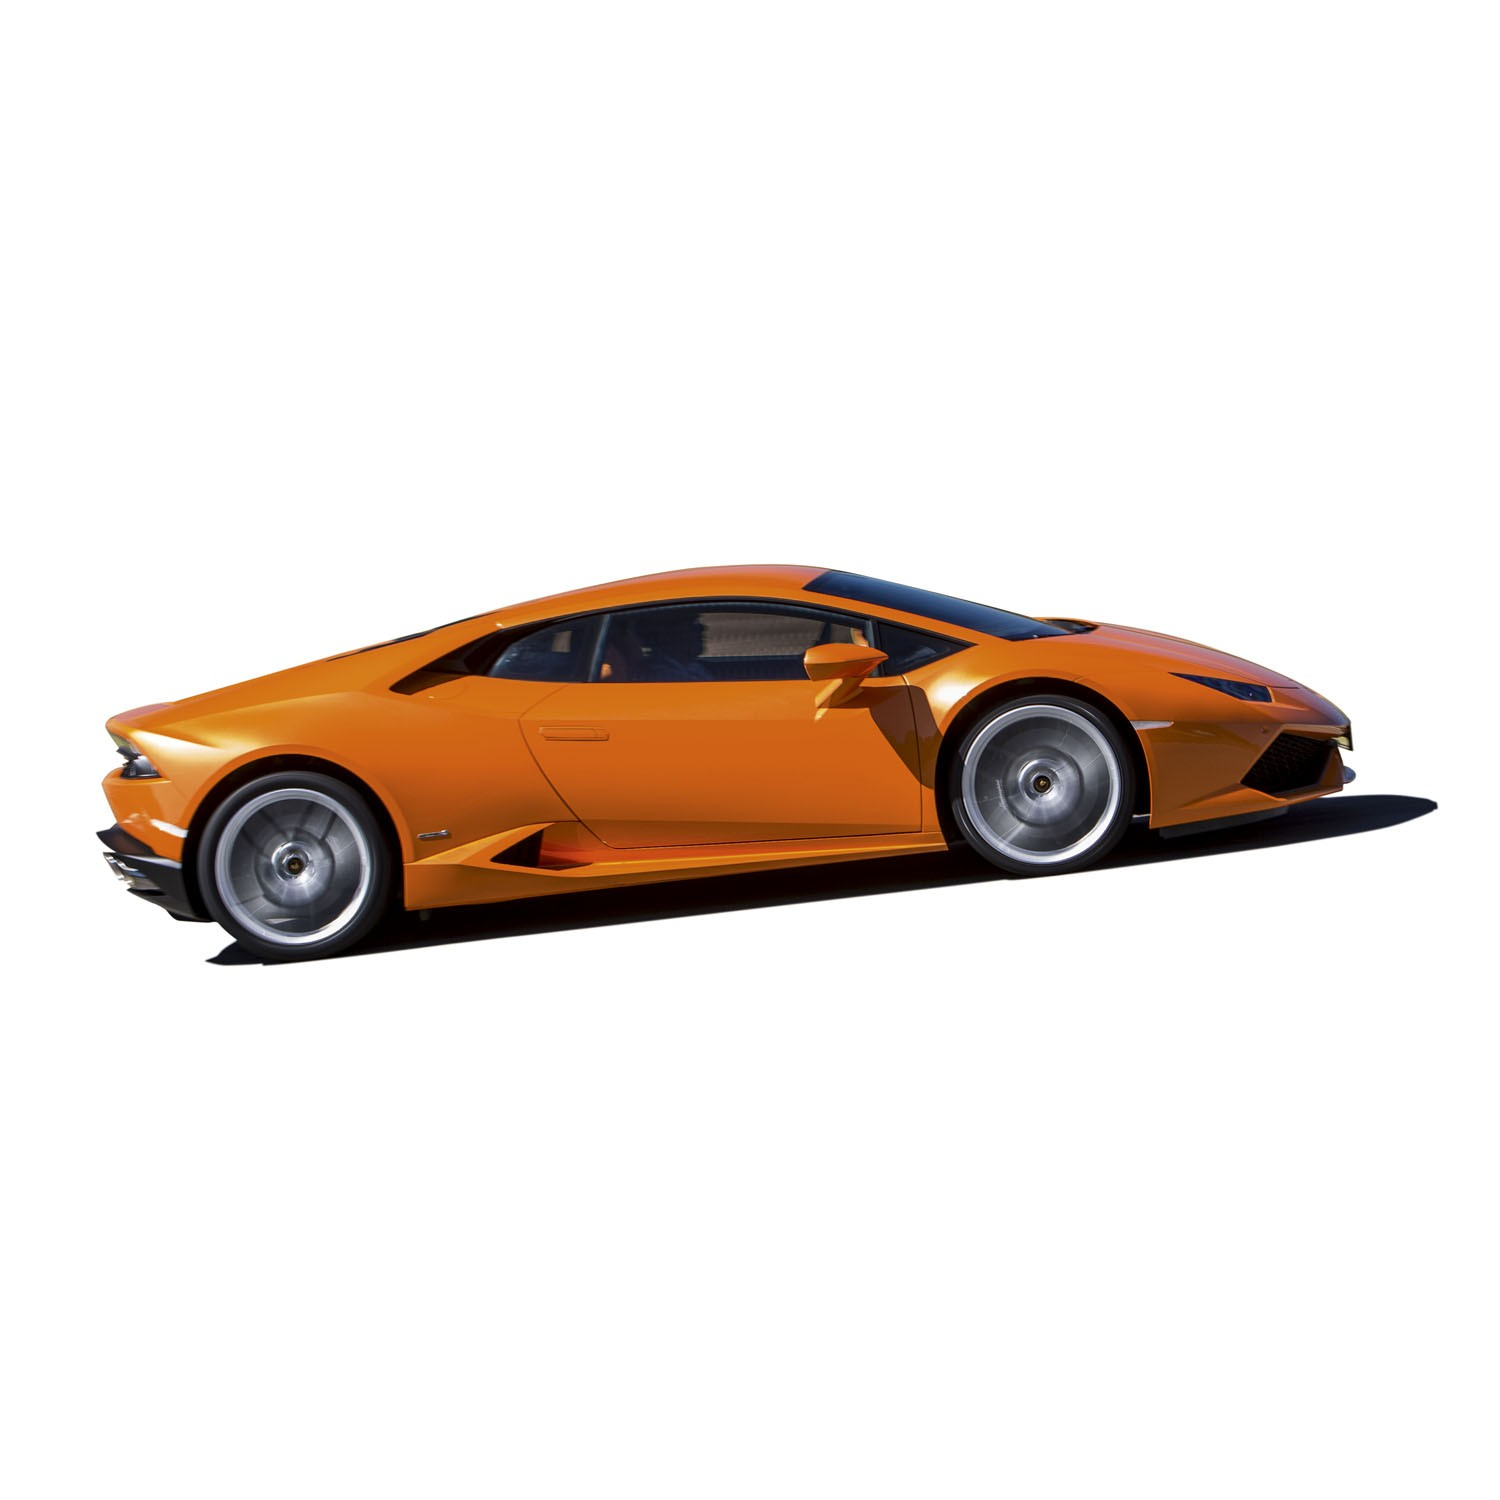 nitro rc car kits with Build The Lamborghini Huracan on Jet Drives besides Watch as well 251411090909 furthermore Event Coverage Mmrctpa Truck Tractor Pull In Sturgeon Mo additionally 107244.